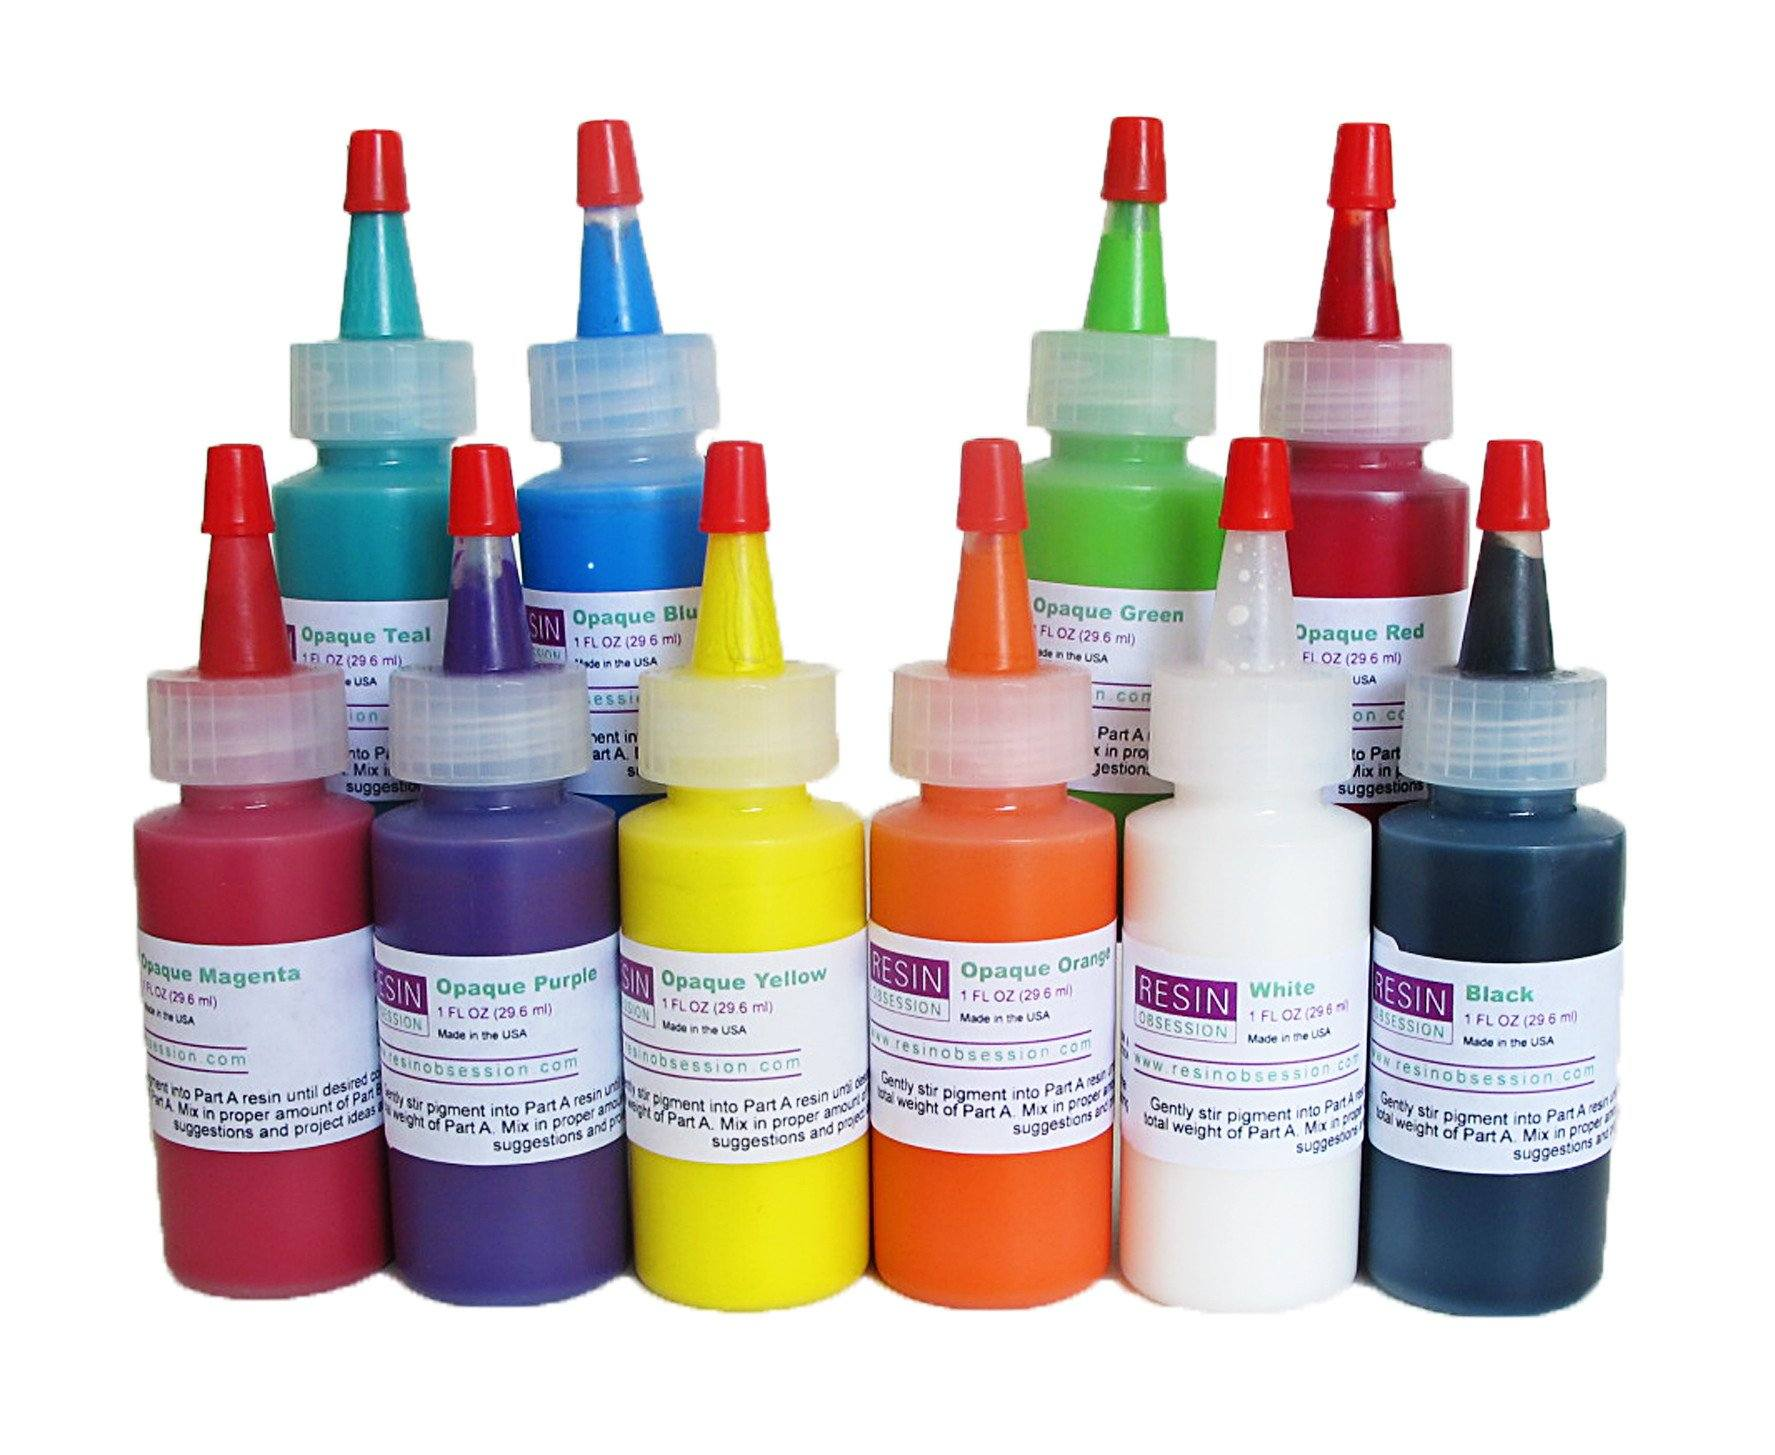 https://www.resinobsession.com/products/resin-obsession-opaque-color-pigments-complete-set-of-ten-colors/